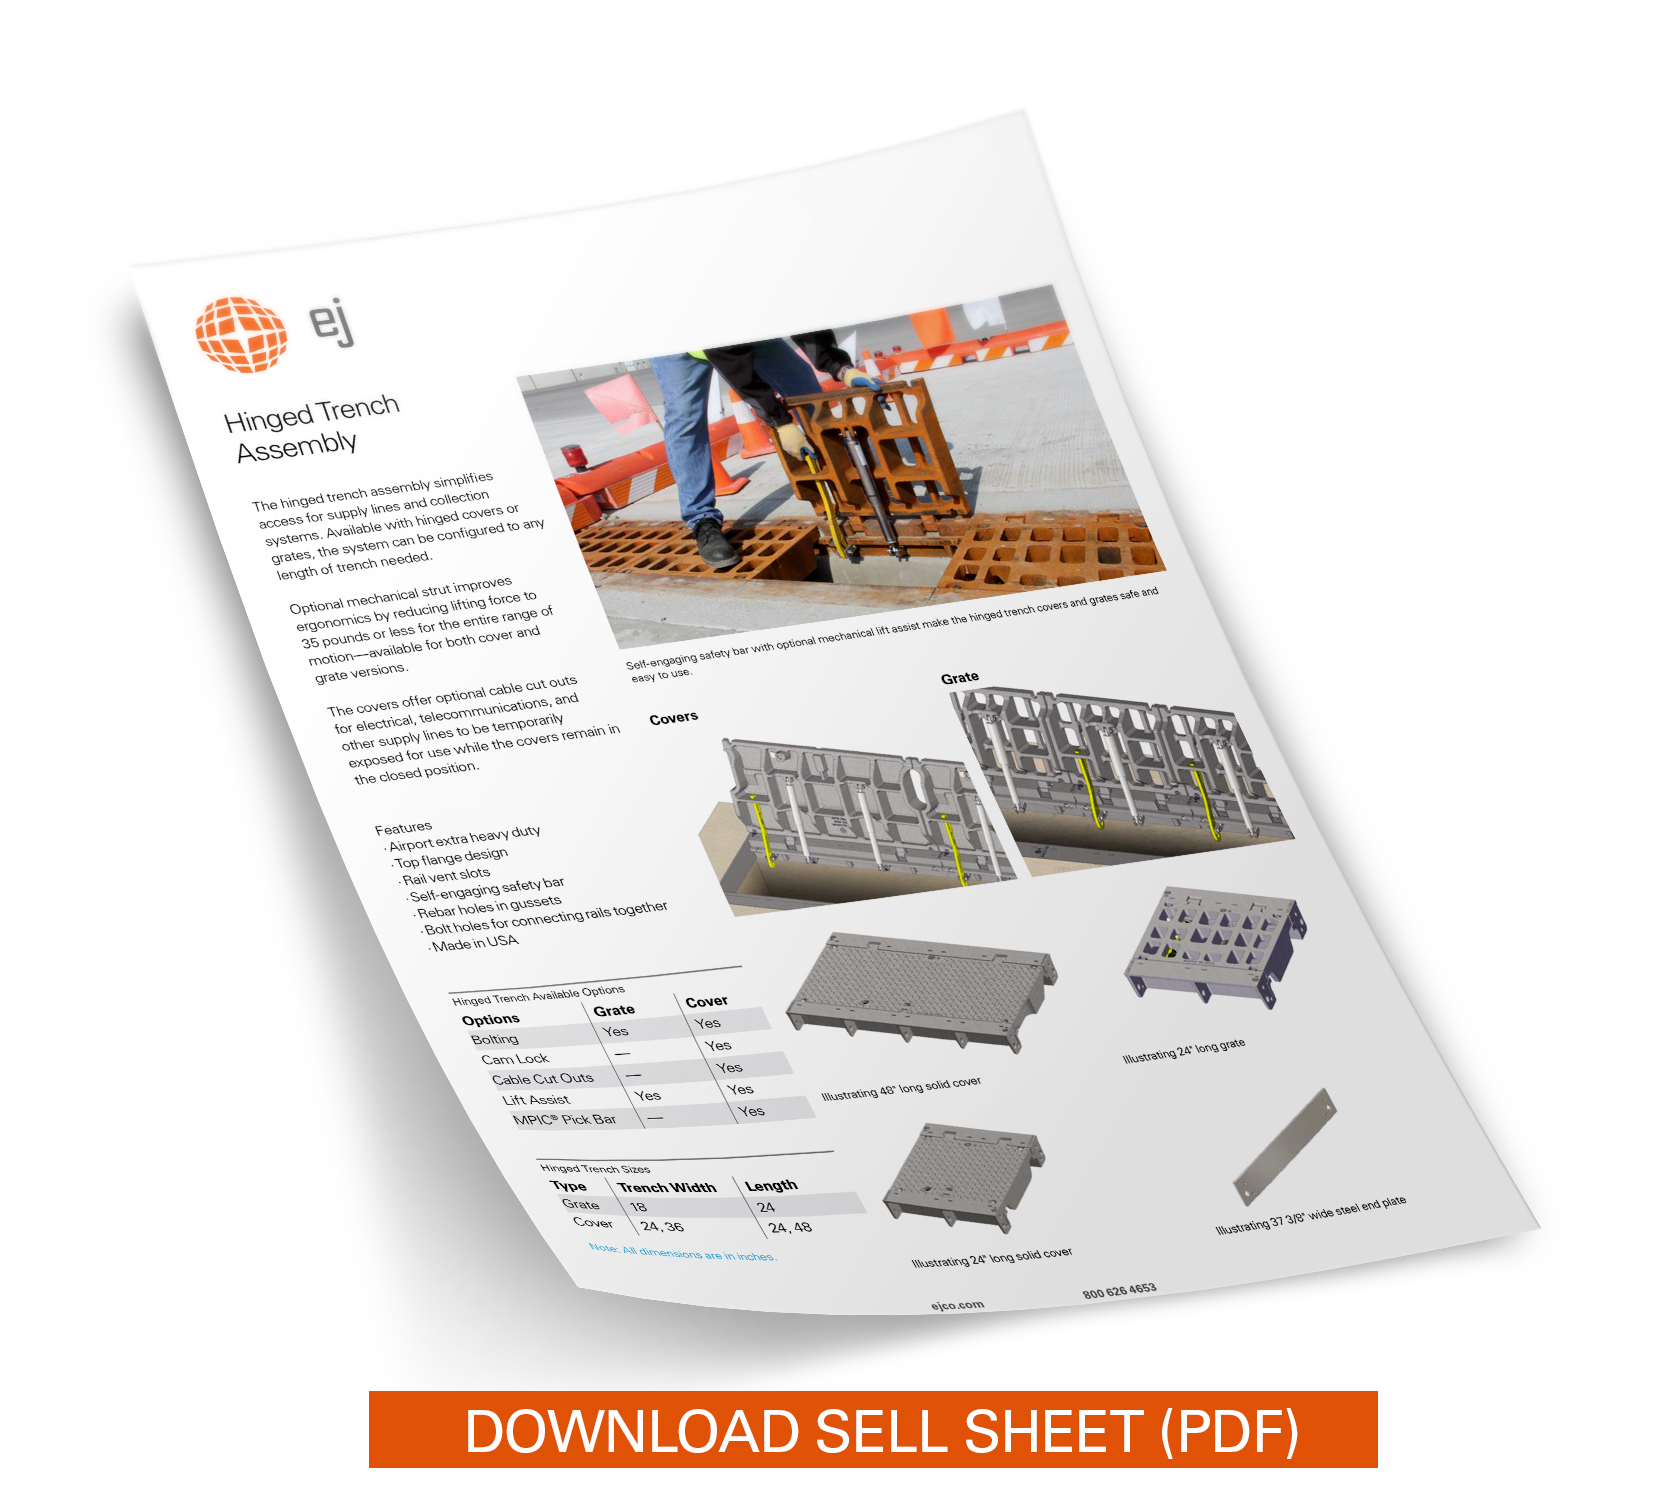 hinged_trench_sell_sheet_onepage_download